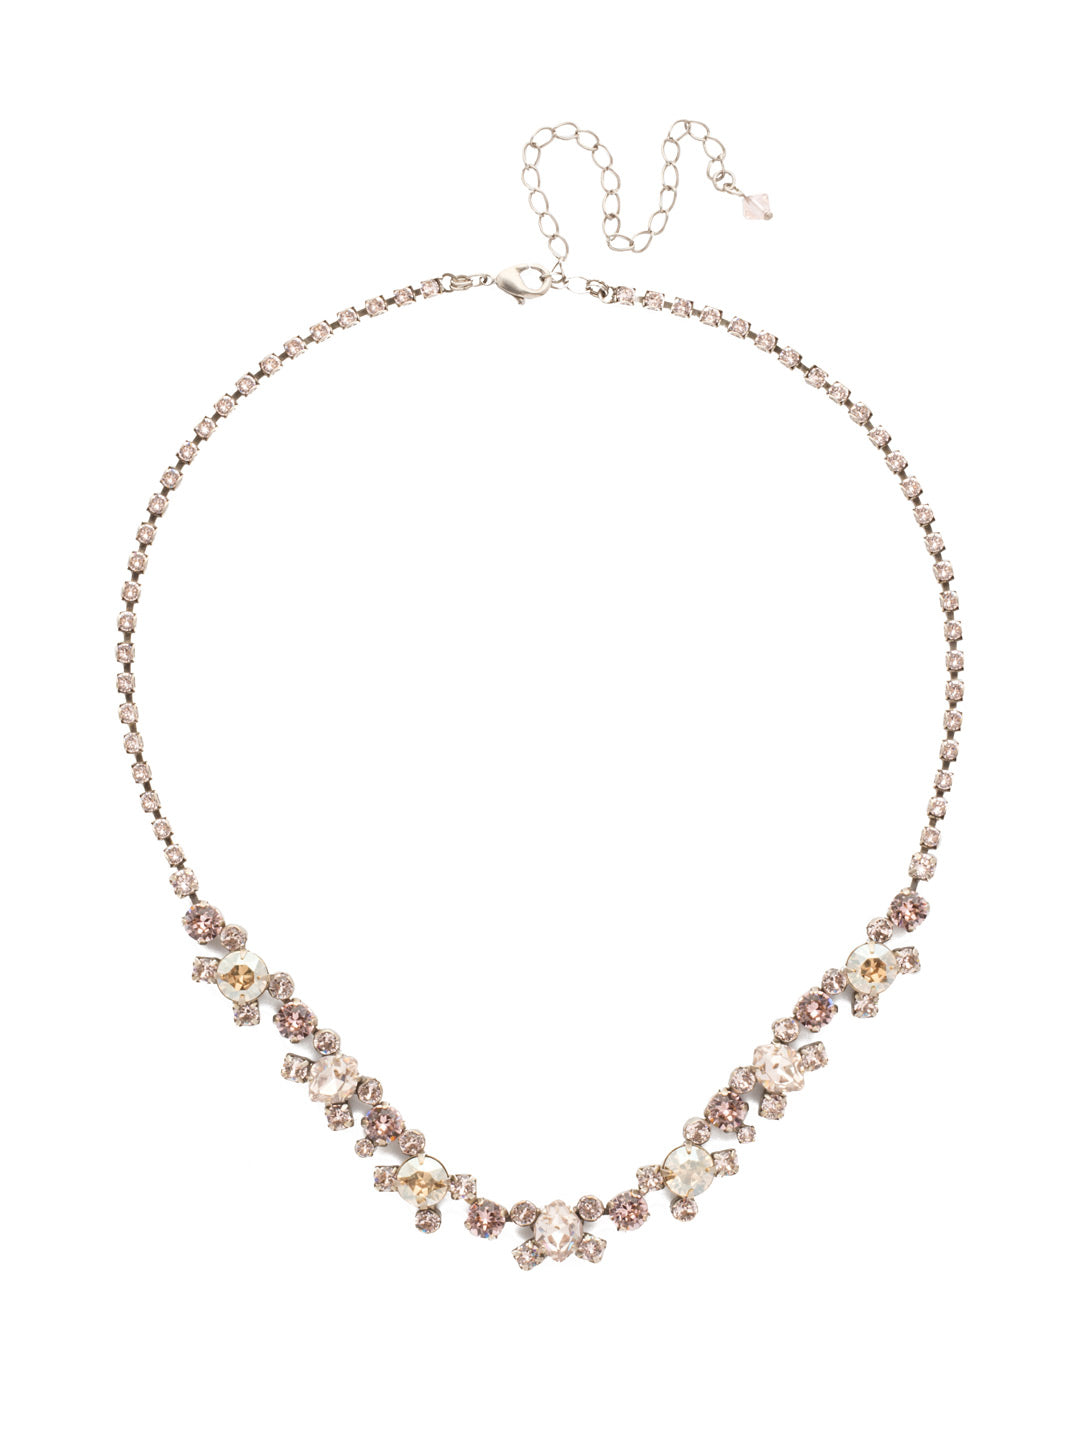 Perfect Harmony Line Necklace - NDK11ASSBL